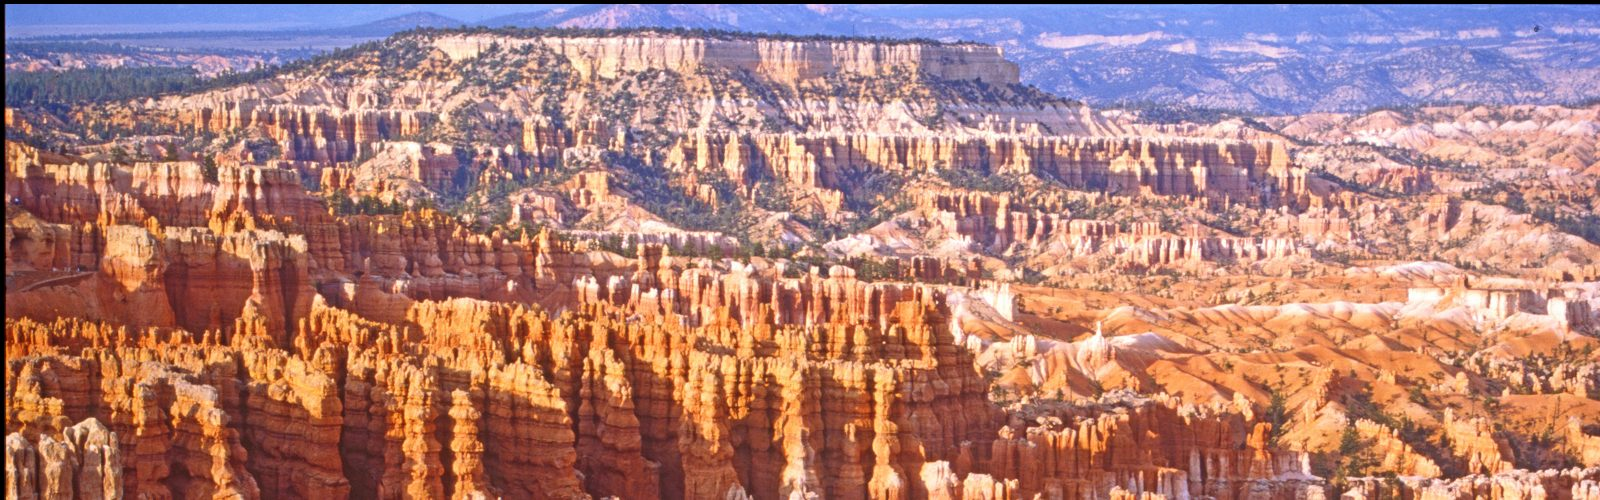 Bryce Canyon by Camille Johnson (Visit Southern Utah)